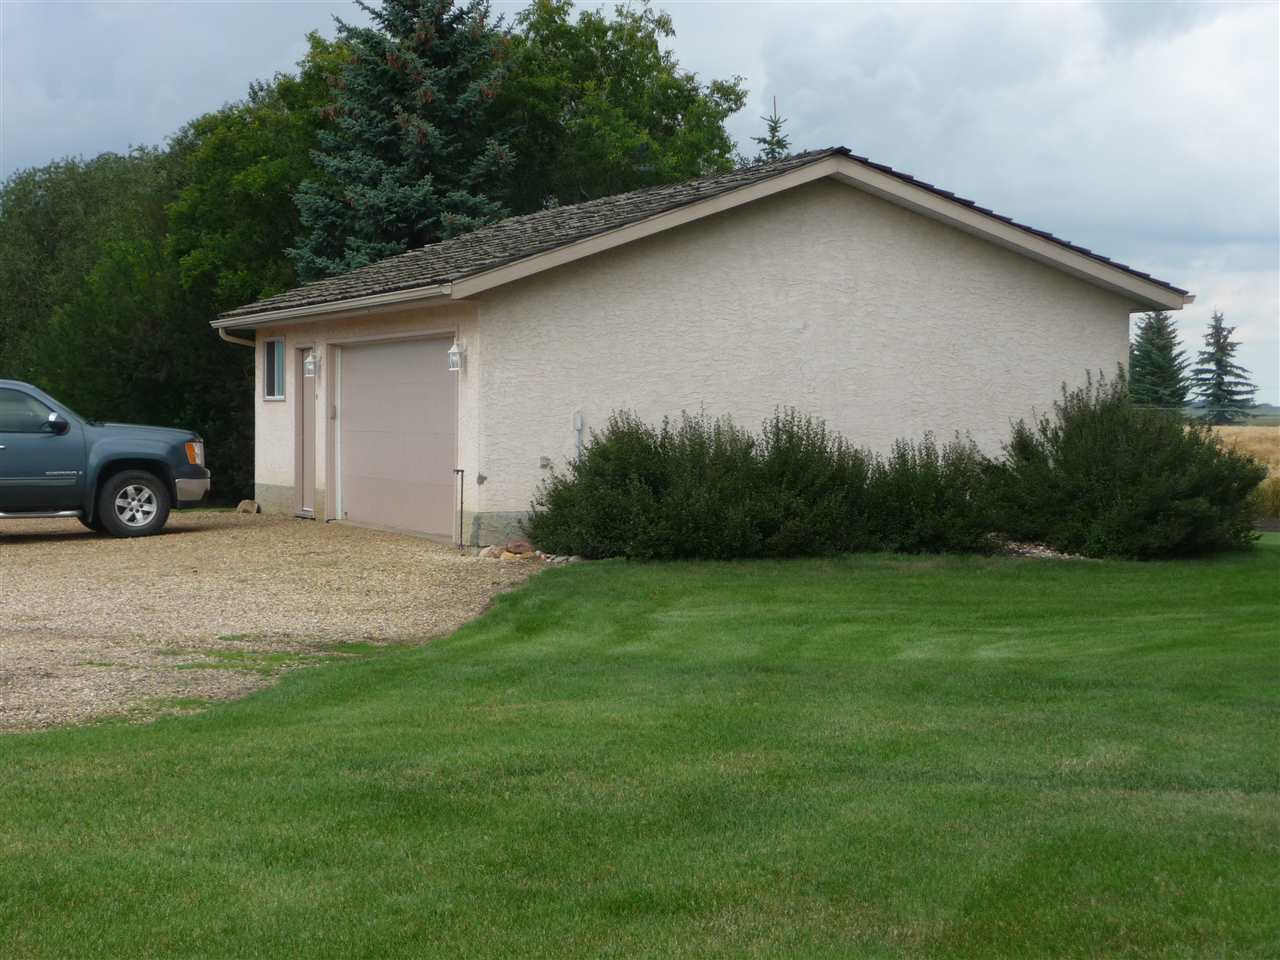 Photo 24: 54527 RGE RD 243: Rural Sturgeon County House for sale : MLS(r) # E4033494